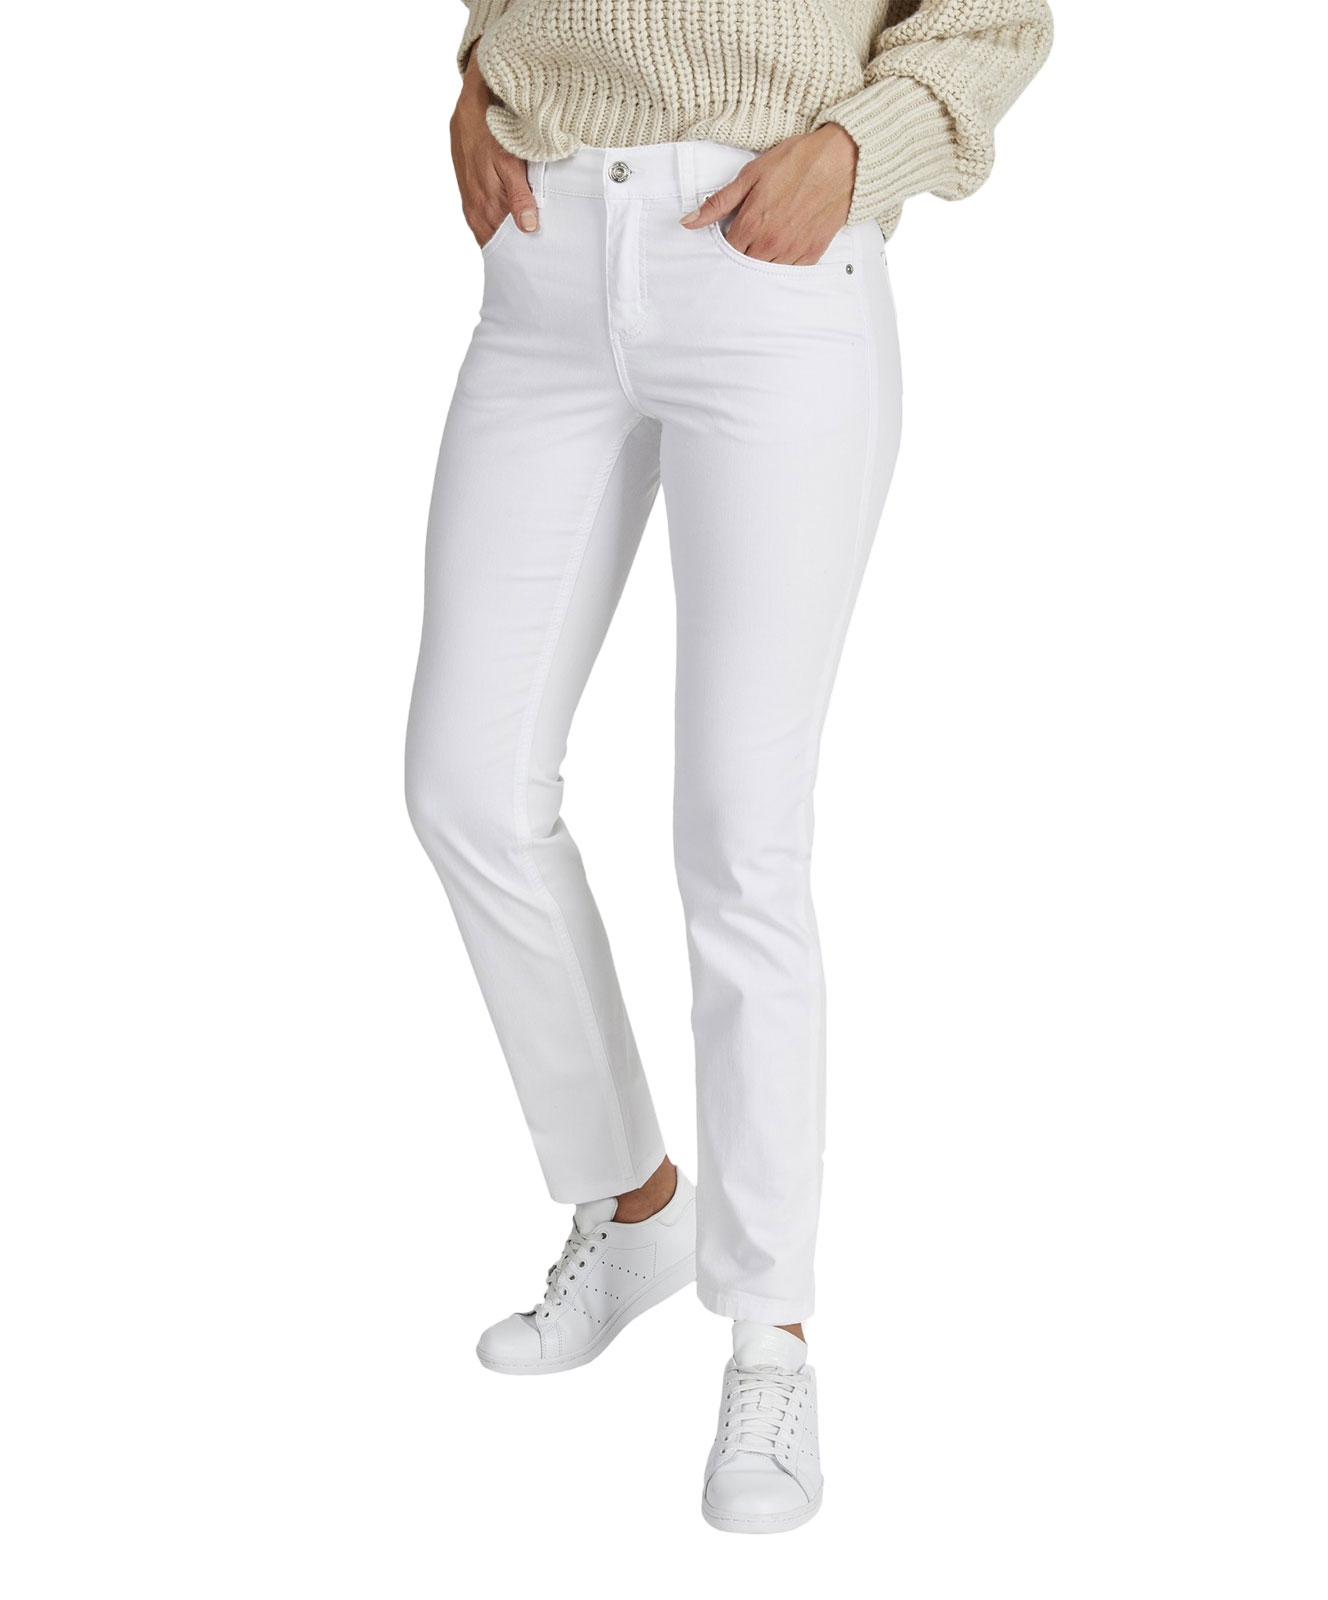 Hosen - Angels Straight Leg Jeans Cici in White  - Onlineshop Jeans Meile